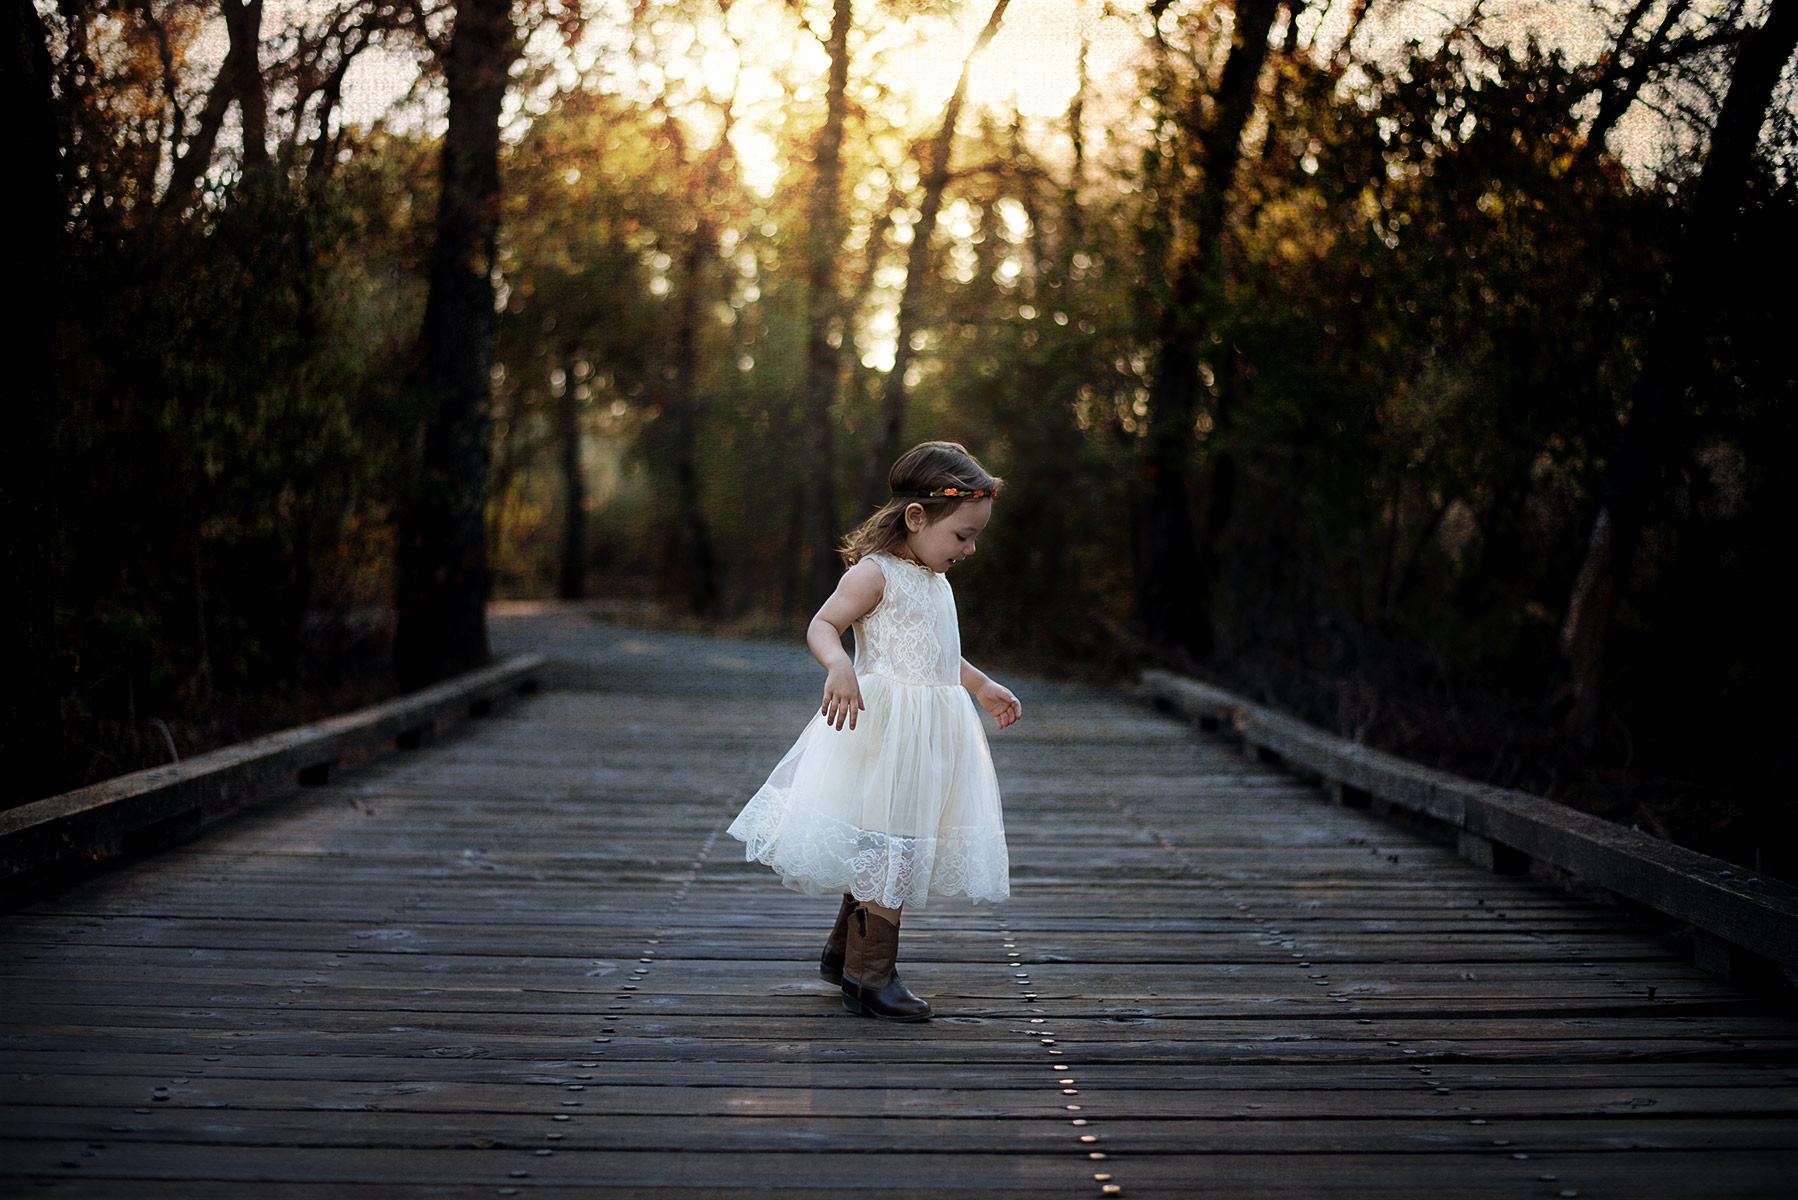 Little girl wearing a vintage style dress with brown cowboy boots during sunset